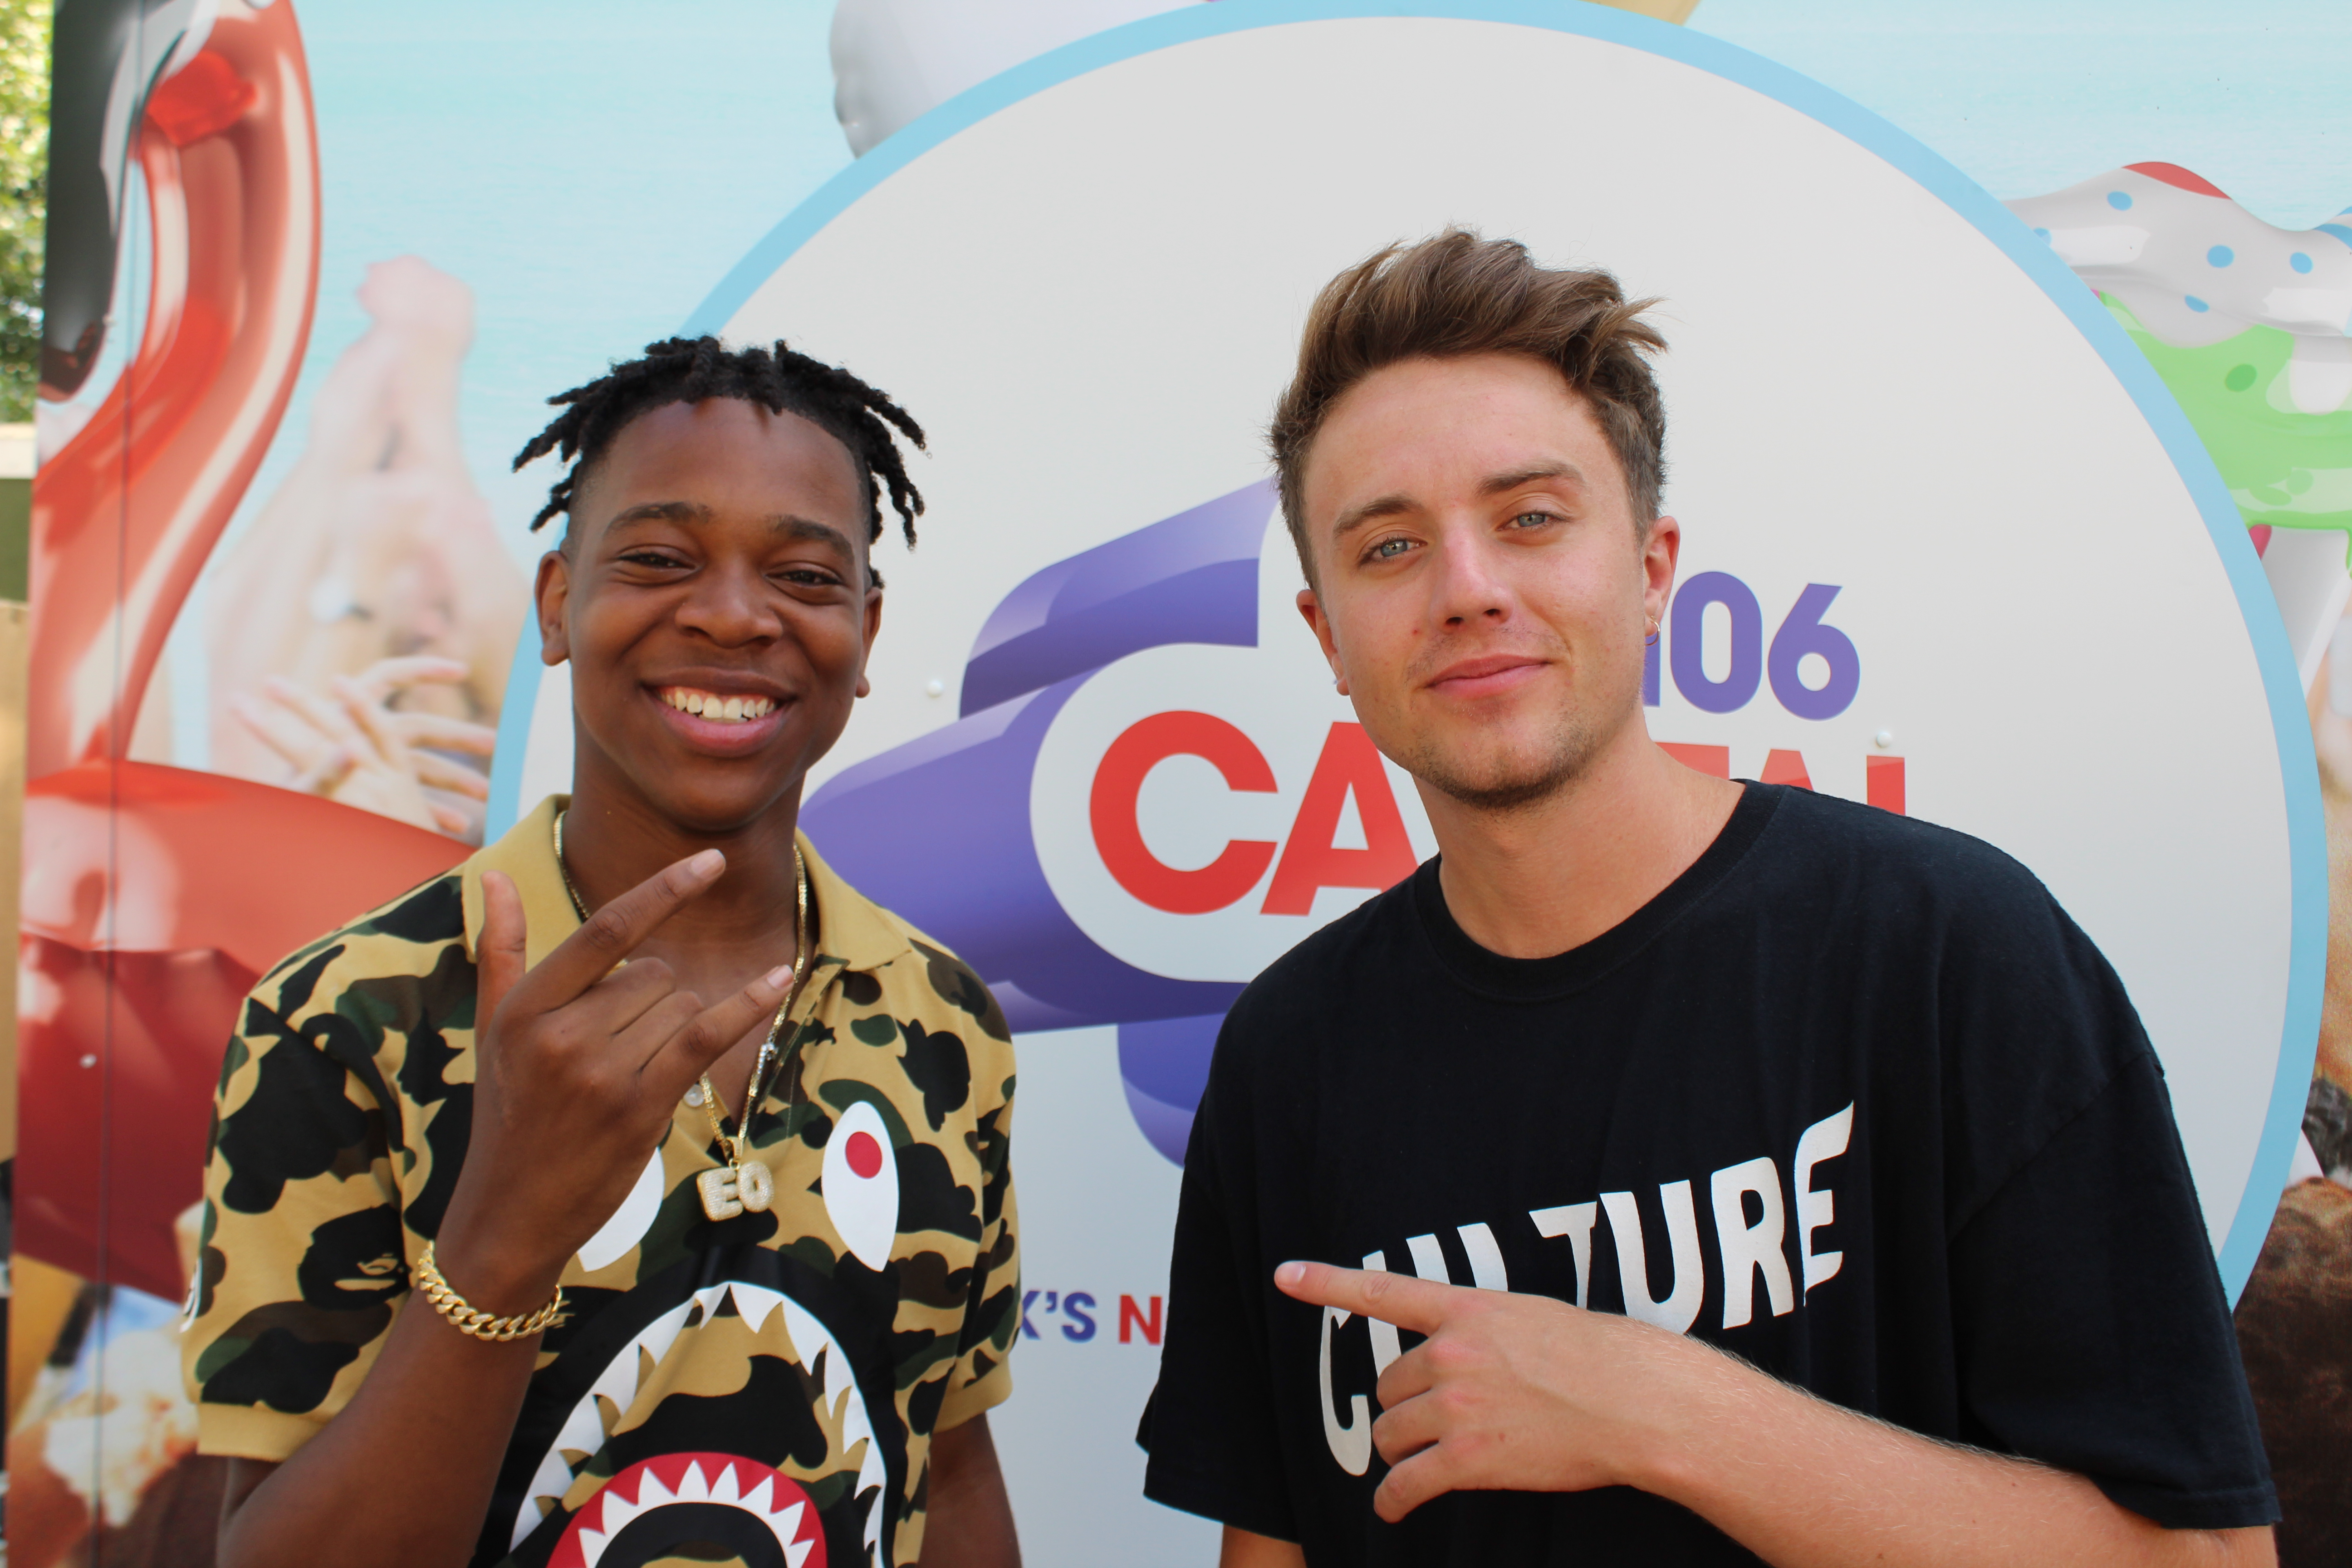 EO Roman Kemp Backstage At Wireless